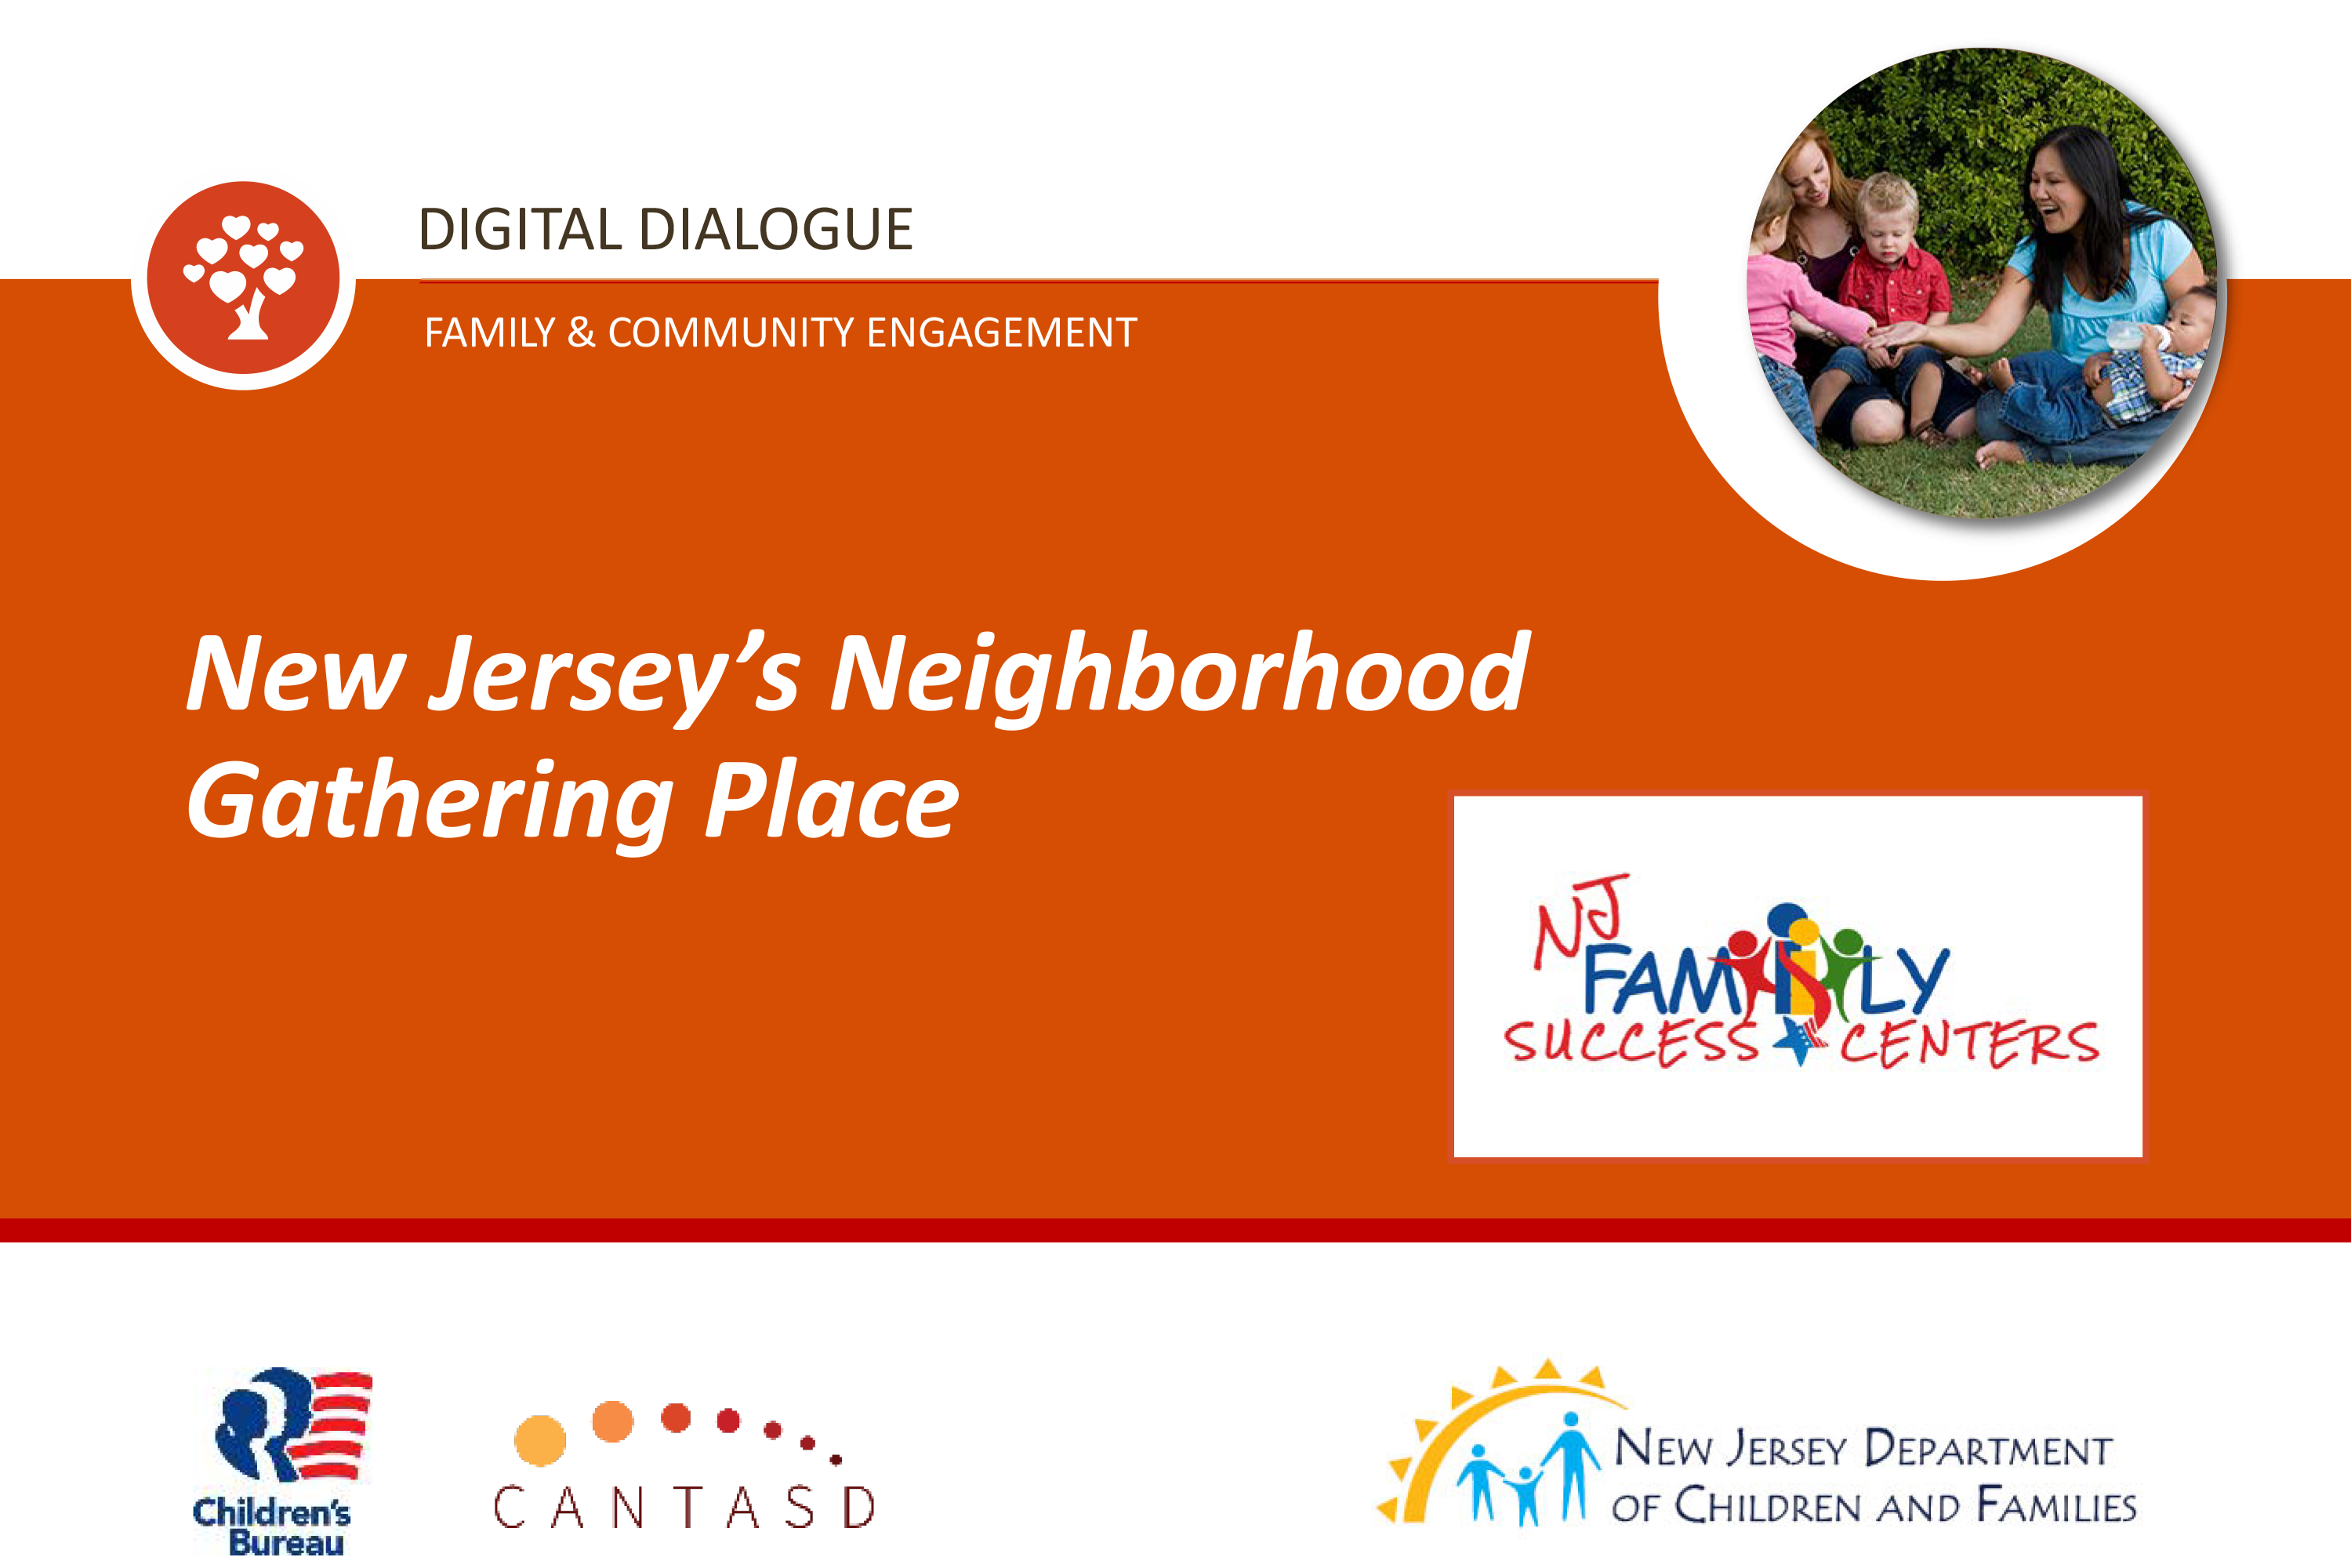 New Jersey's Neighborhood Gathering Place - This link opens in a new window.